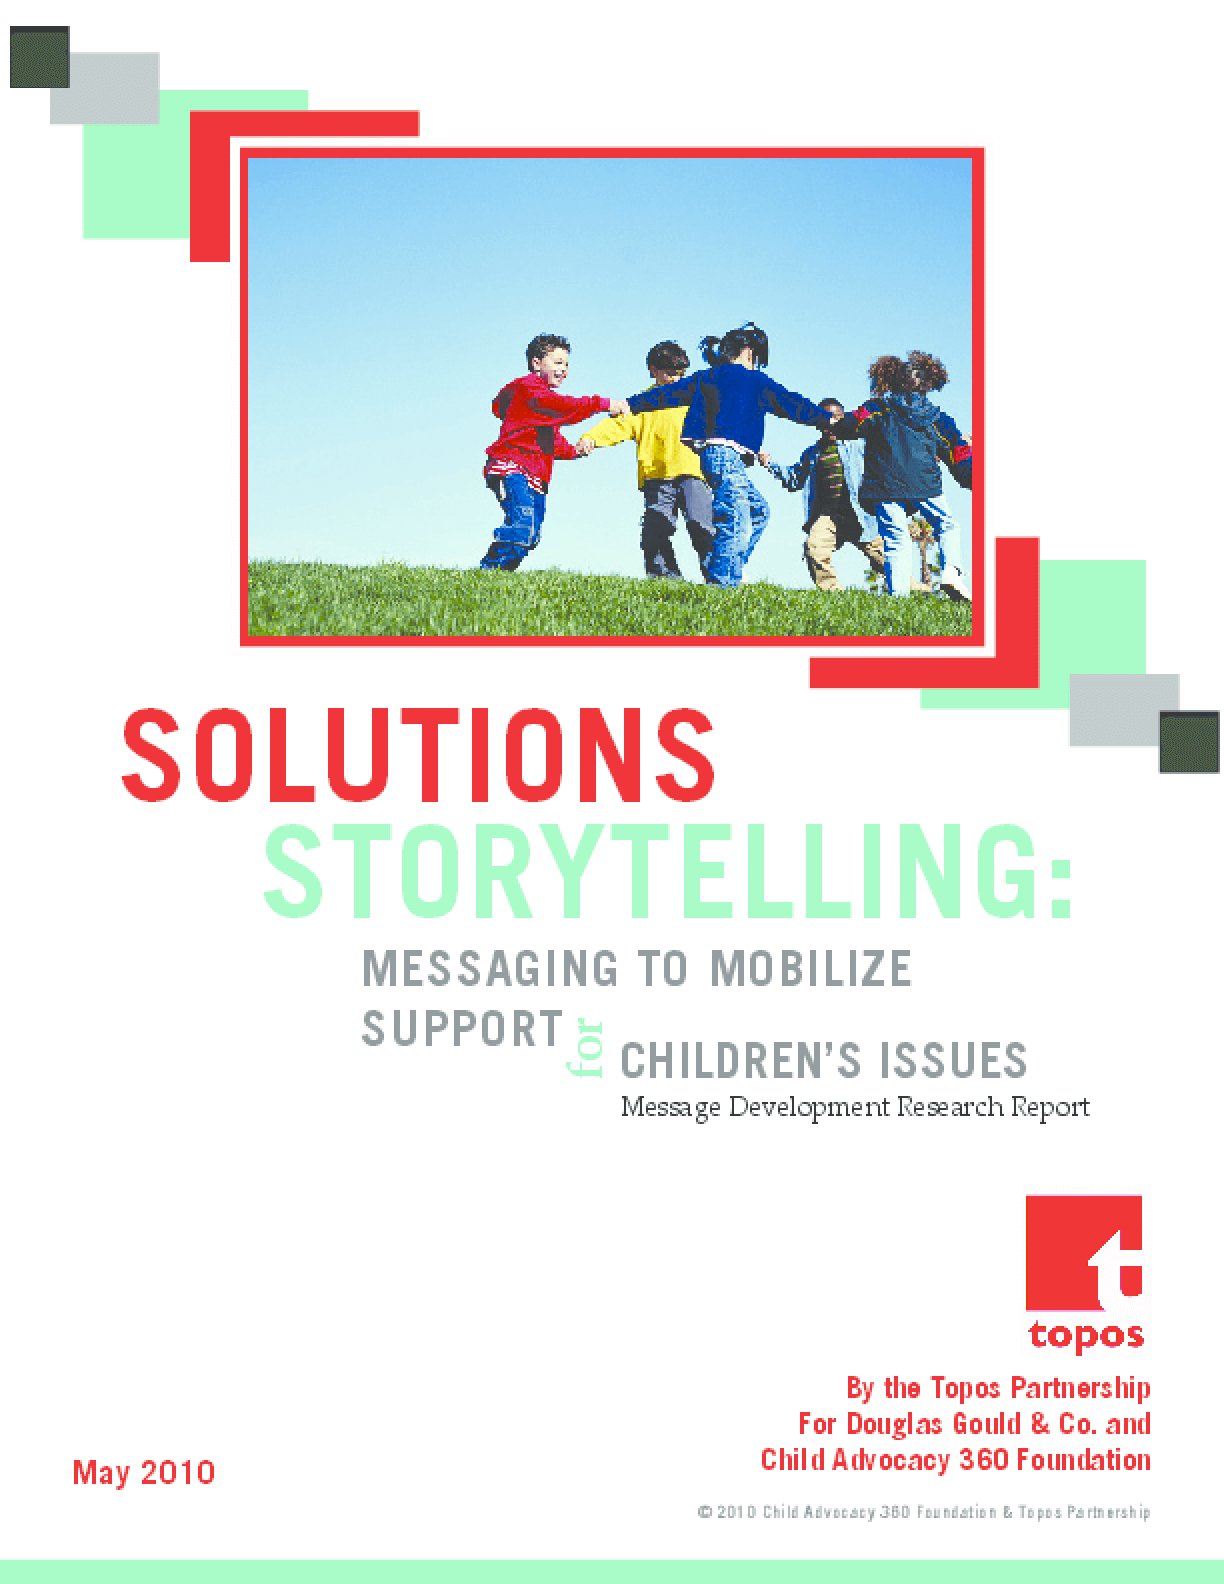 Solutions Storytelling: Messaging to Mobilize Support for